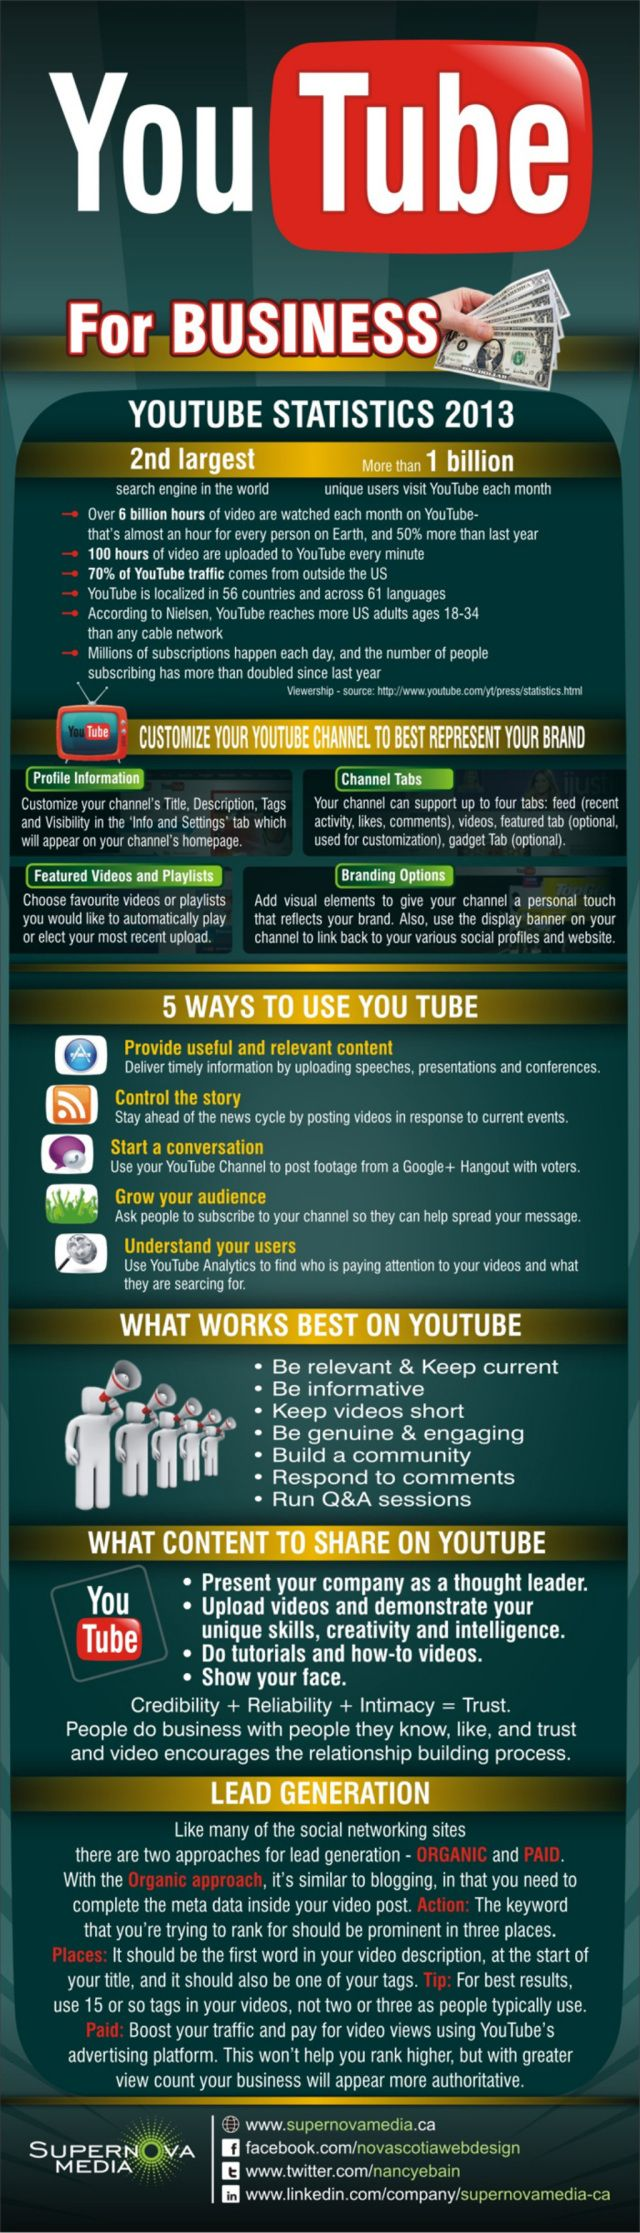 YouTube for business #infografia #infographic #socialmedia